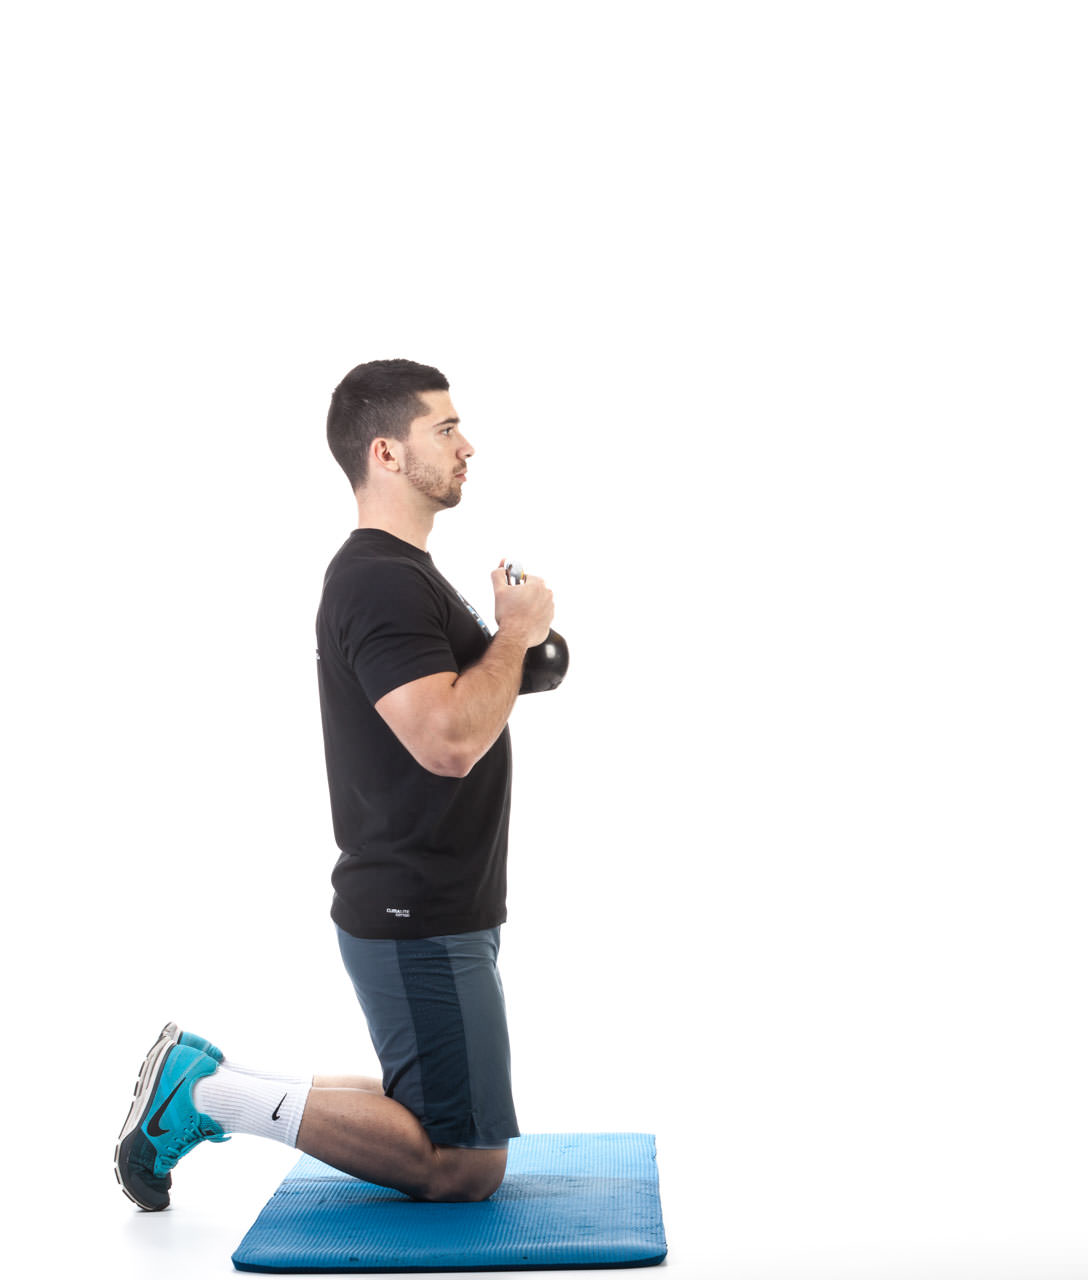 Kettlebell Kneeling to Stand-Up frame #1